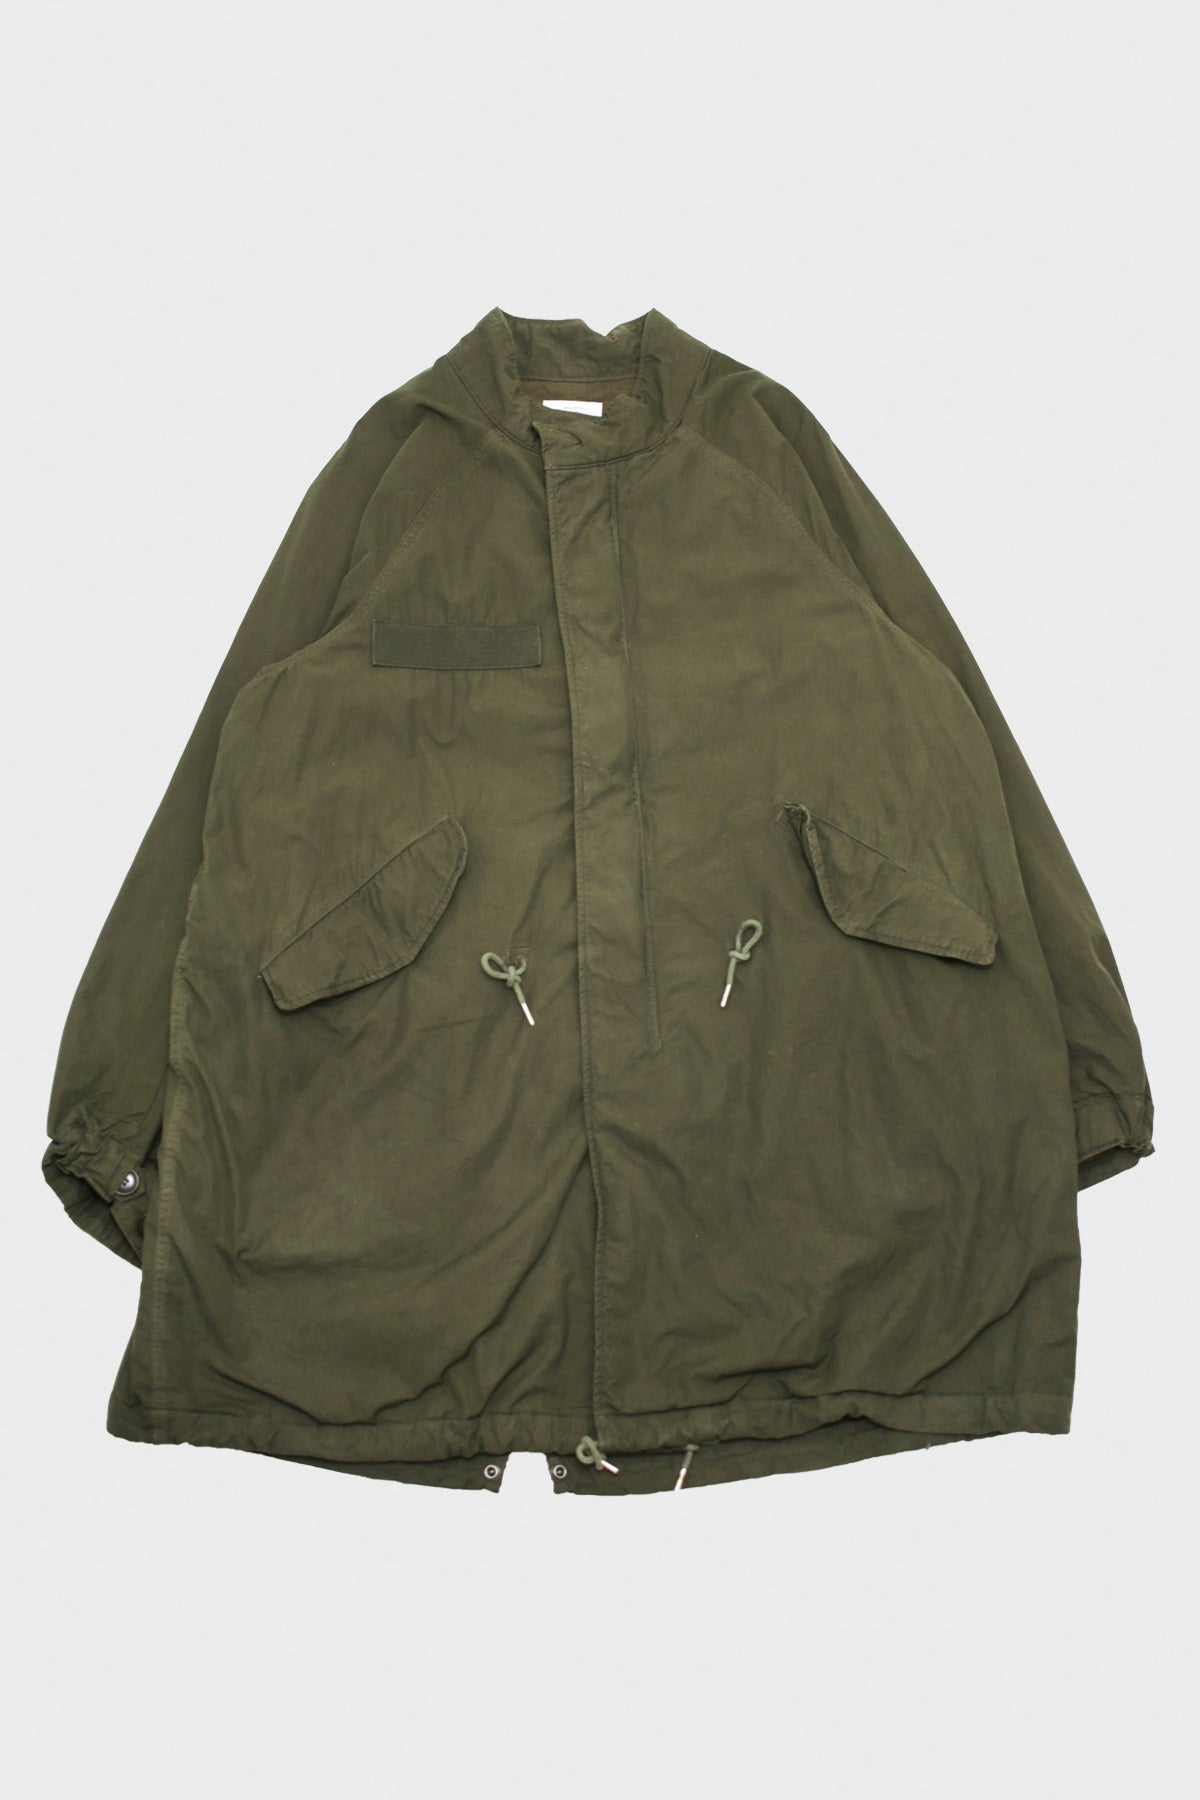 Visvim - Six-Five Fishtail Parka - Olive - Canoe Club